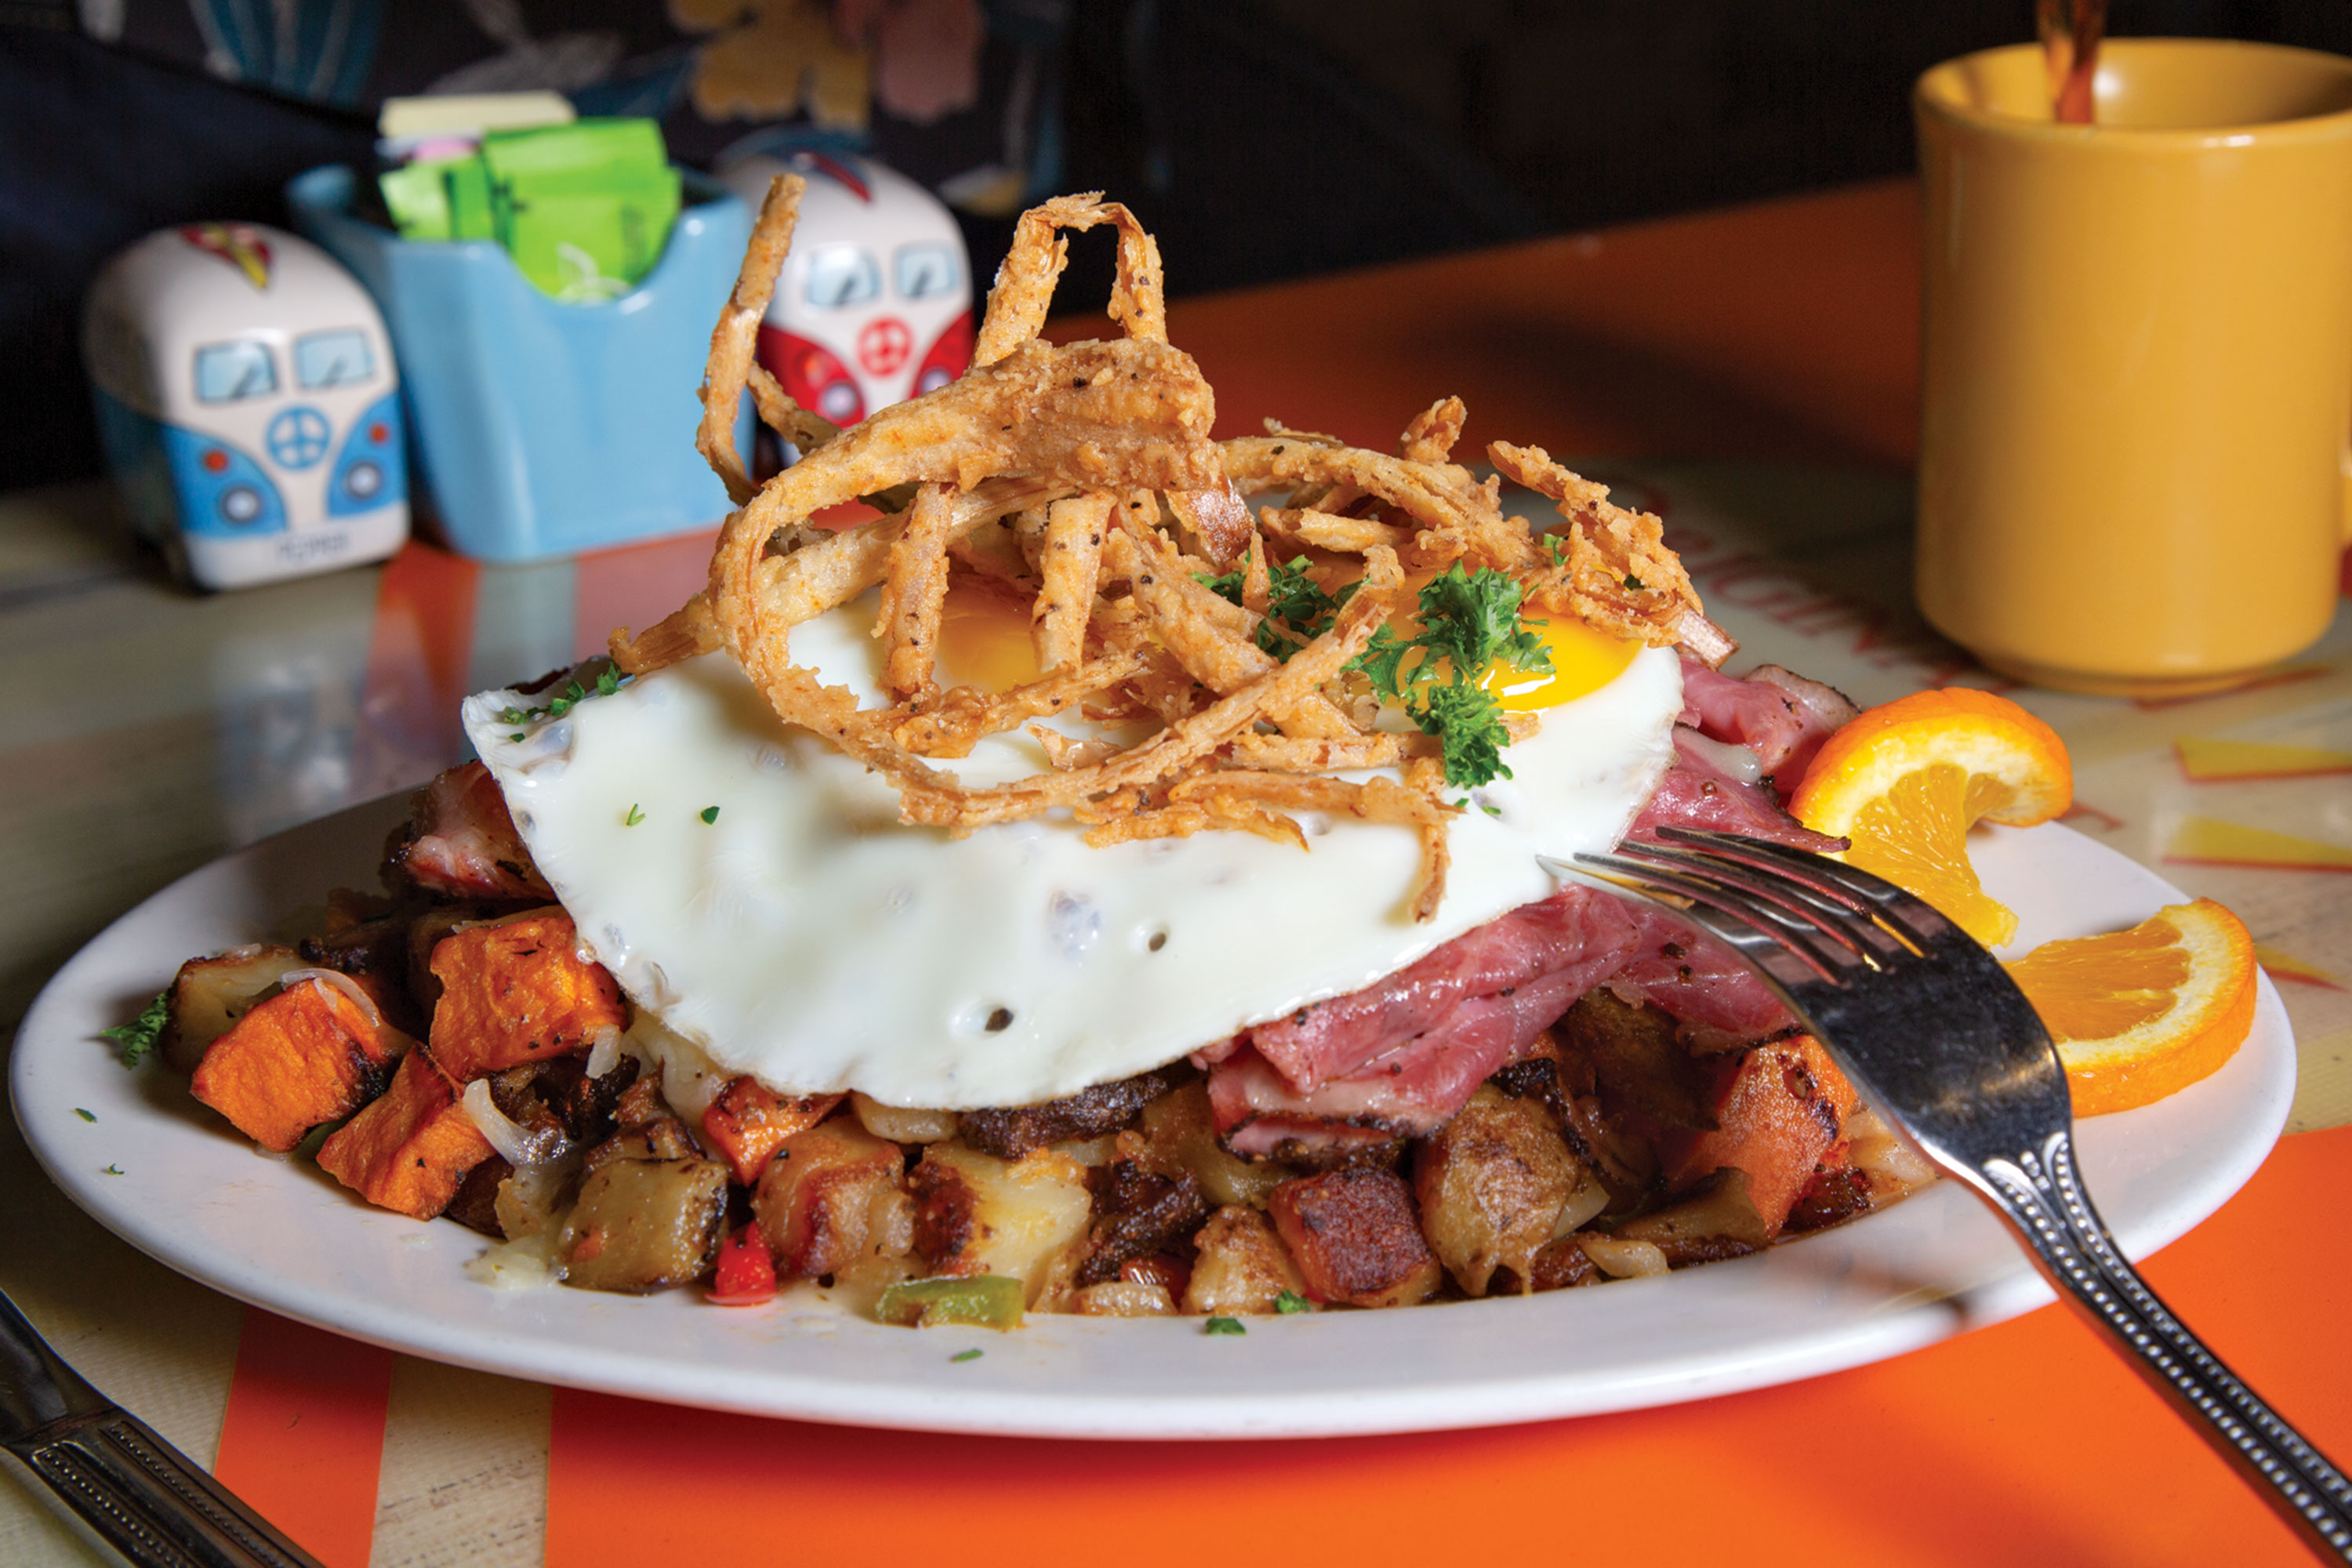 Best Breakfast Specials - Original Breakfast House; Photo by Angelina Aragon